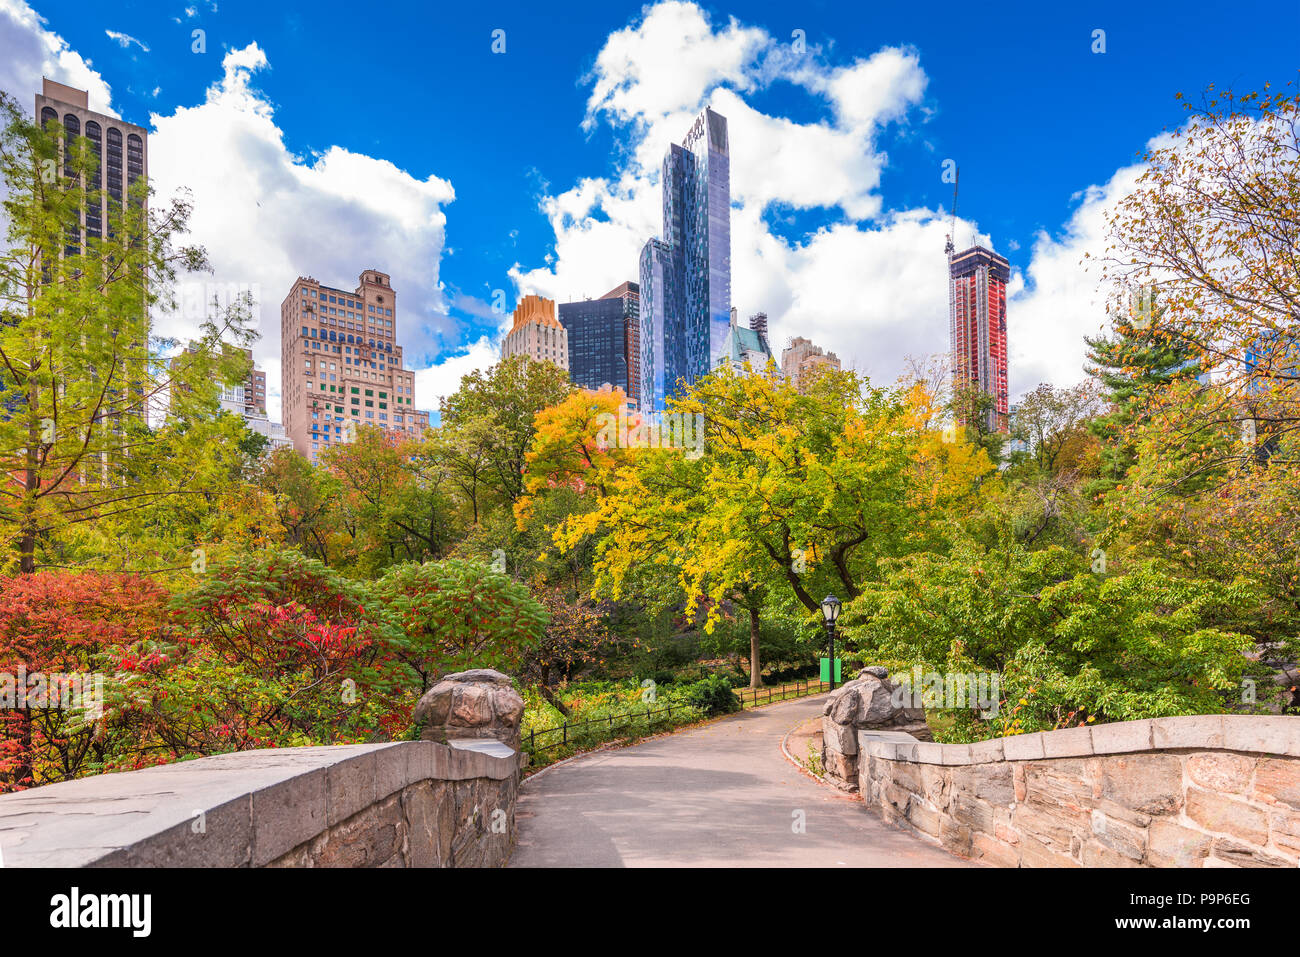 New York, New York, Stati Uniti d'America Park South cityscape da Central Park in autunno. Immagini Stock